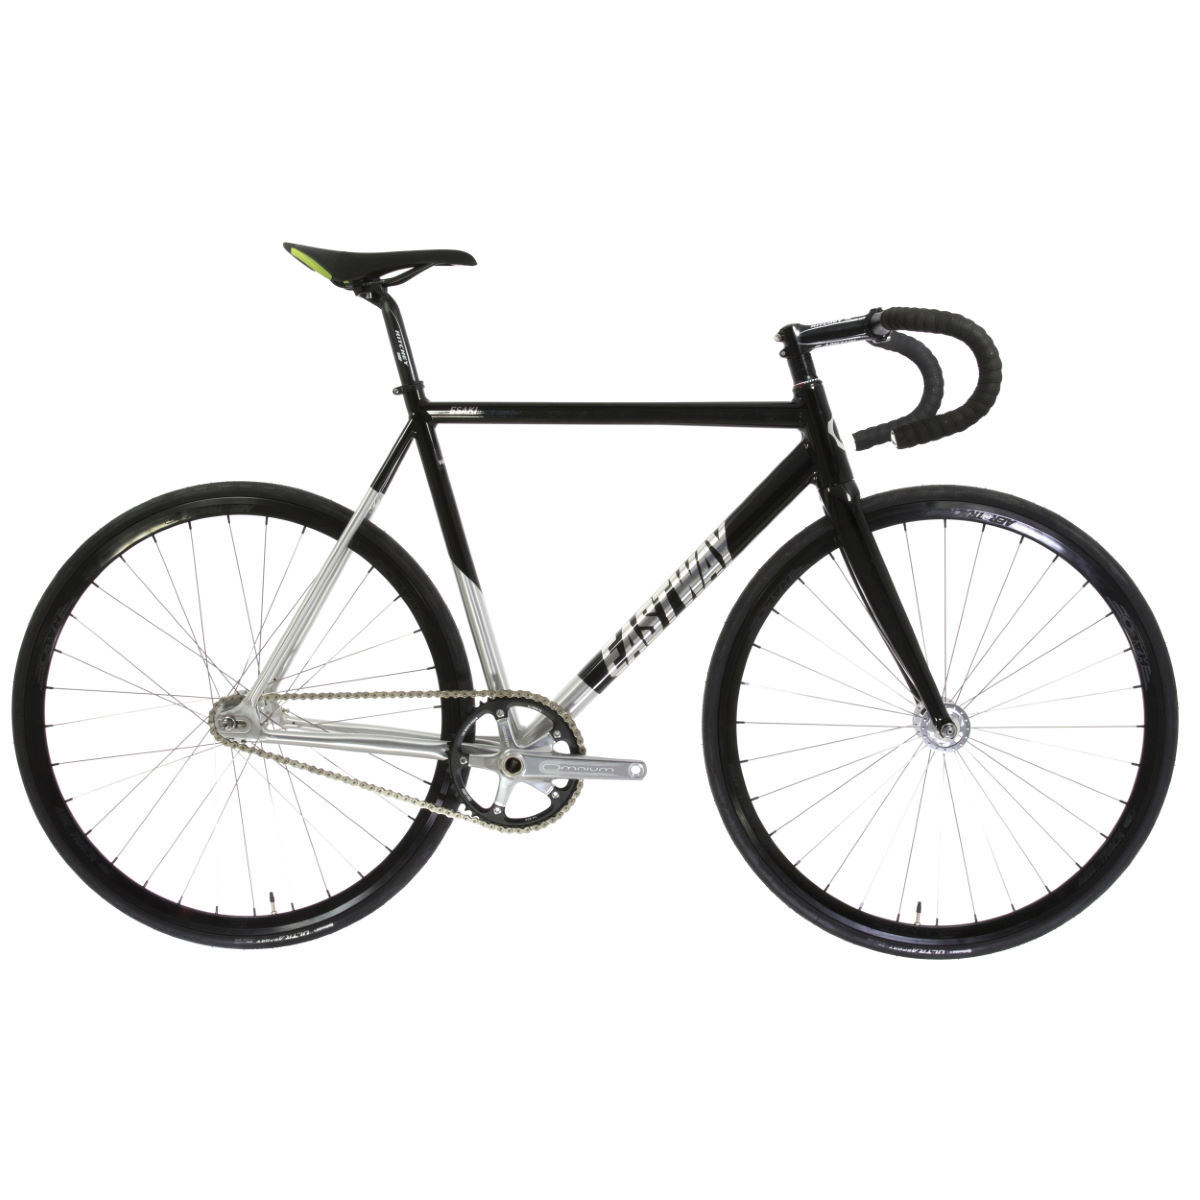 Vélo de piste Eastway Esaki T1 (2016) - 52cm Noir/Argenté Single speed